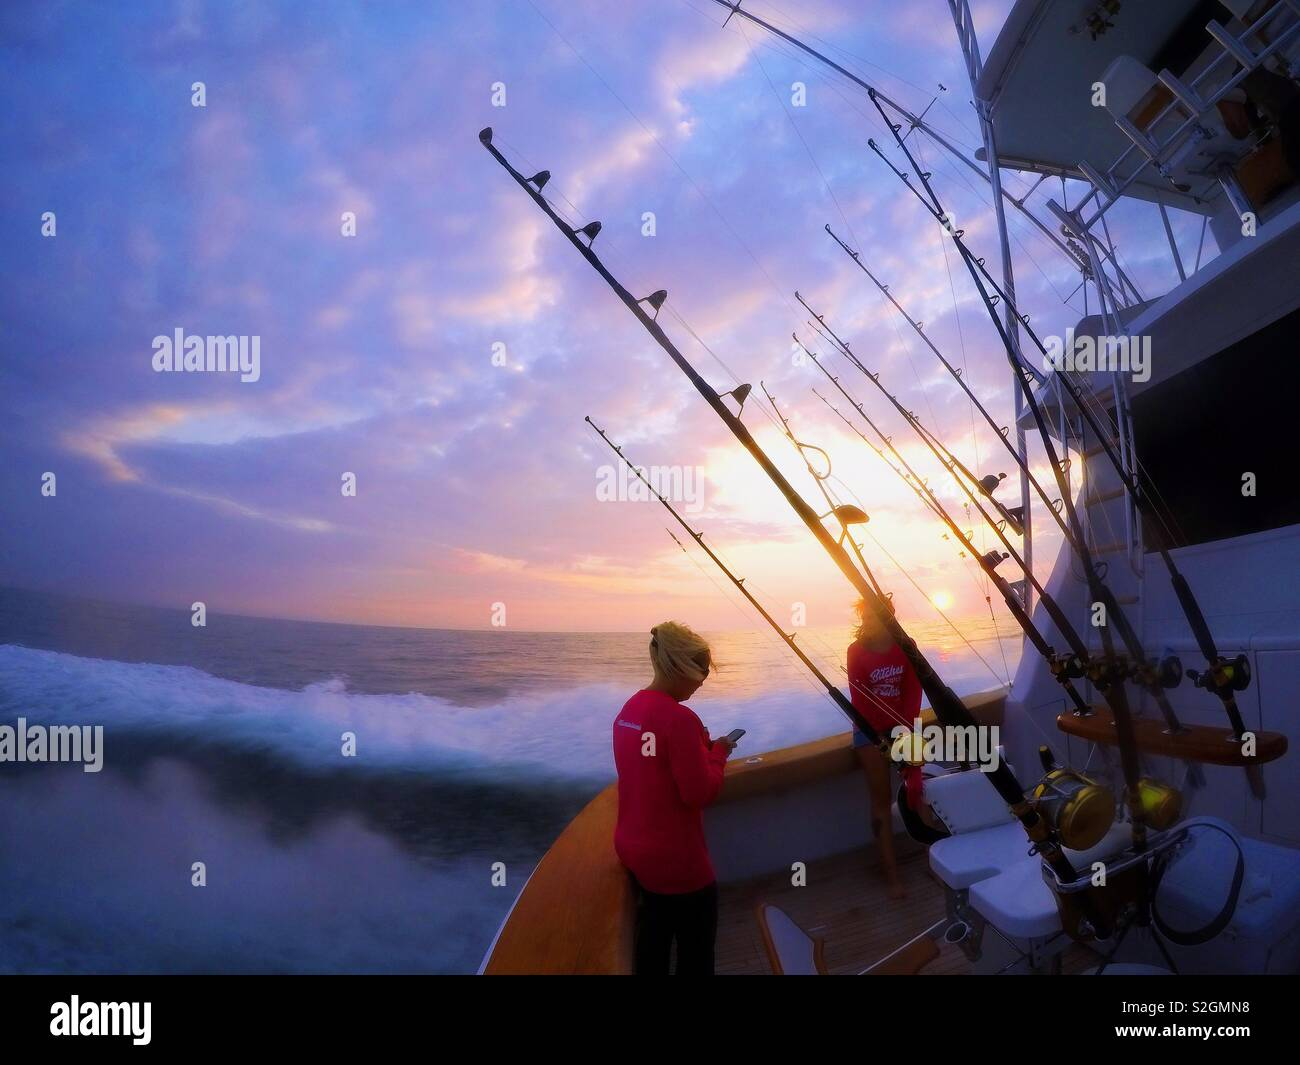 A sportfishing boat heads out to sea off the coast of Ocean City, Maryland. Stock Photo